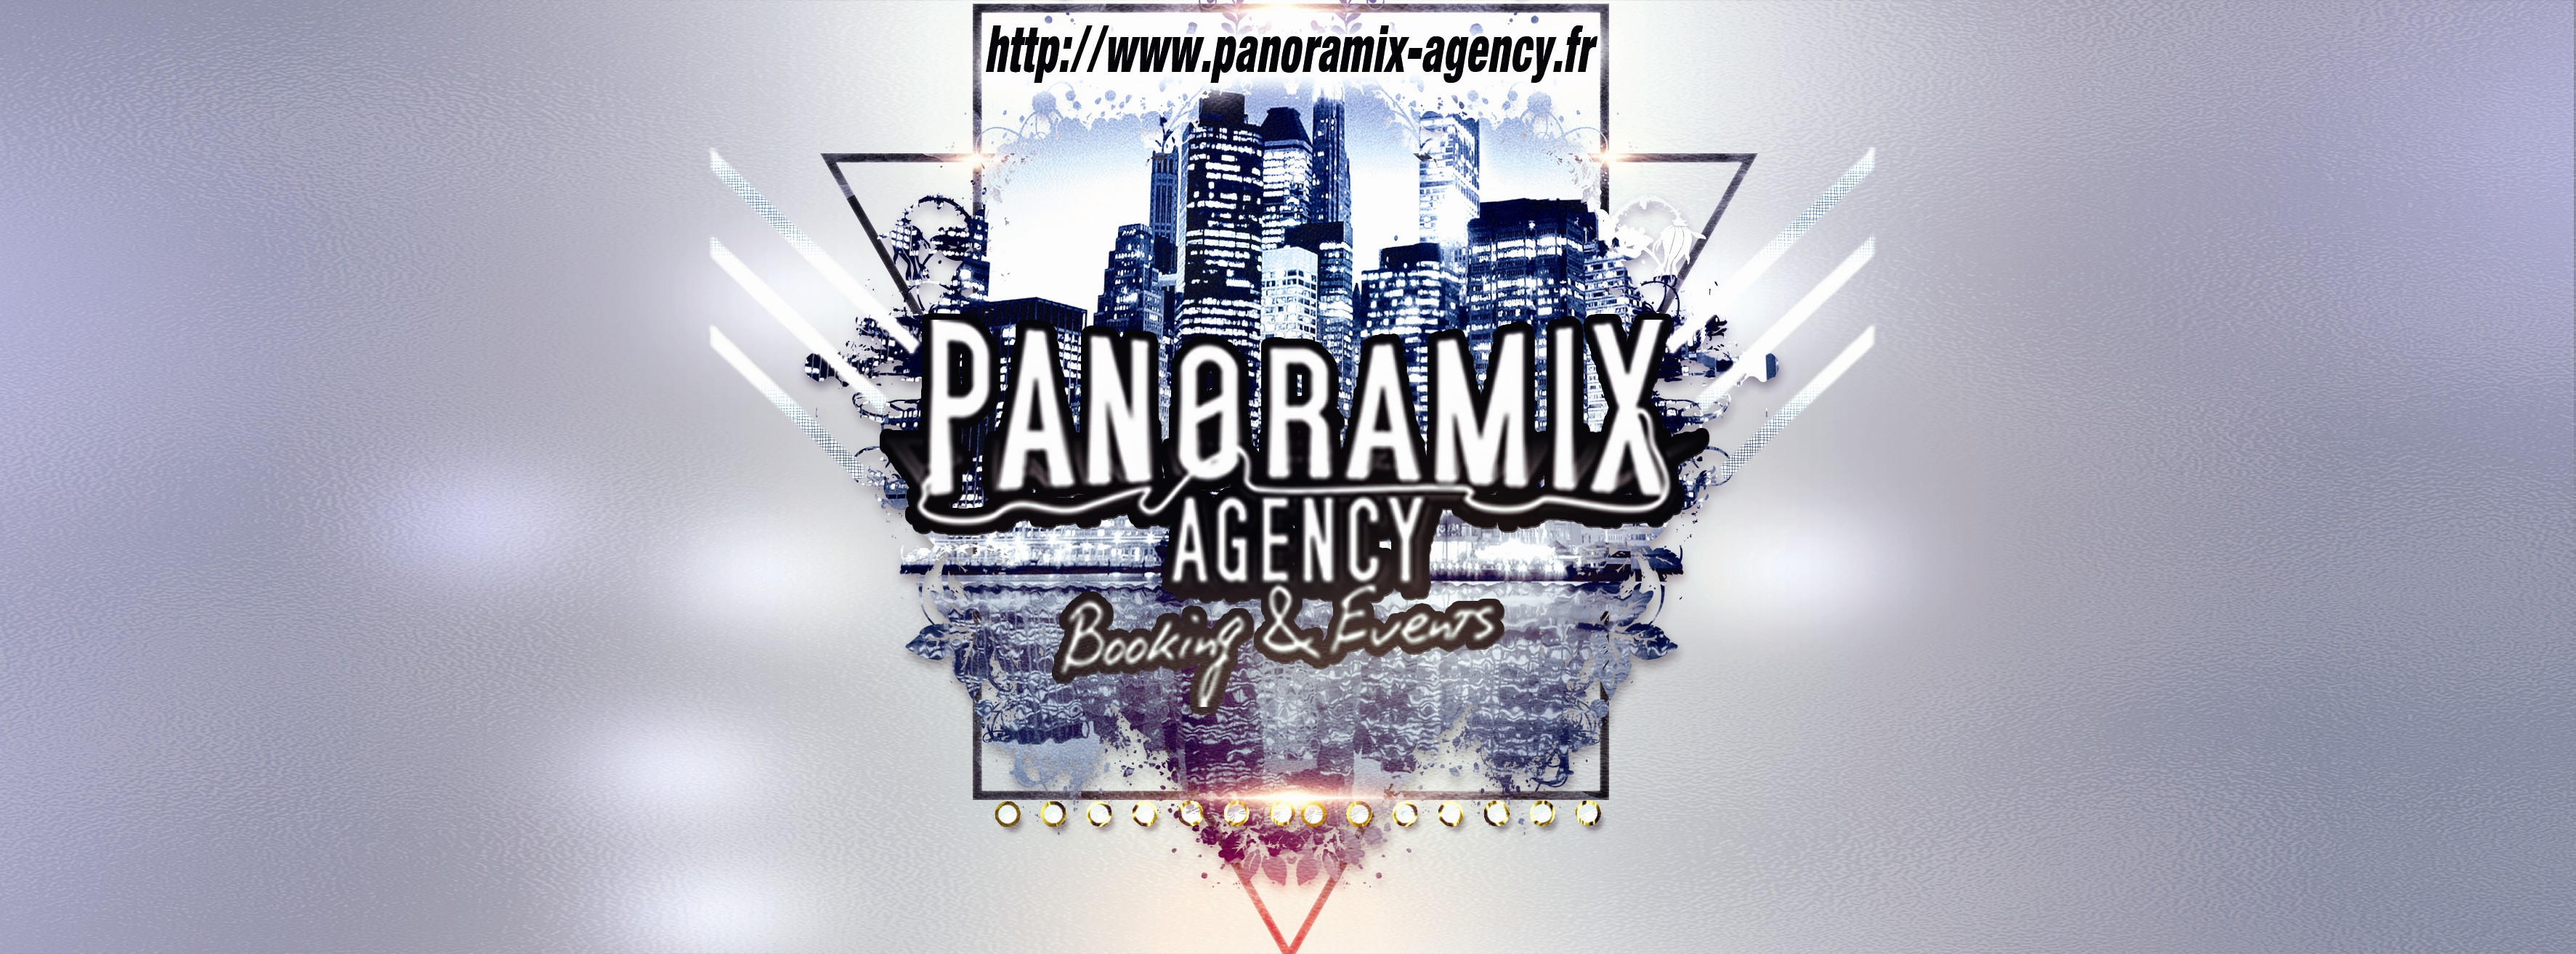 http://panoramix-radio-station.com/wp-content/uploads/2017/04/panoramix-agency-banner-grise-SITE.jpg